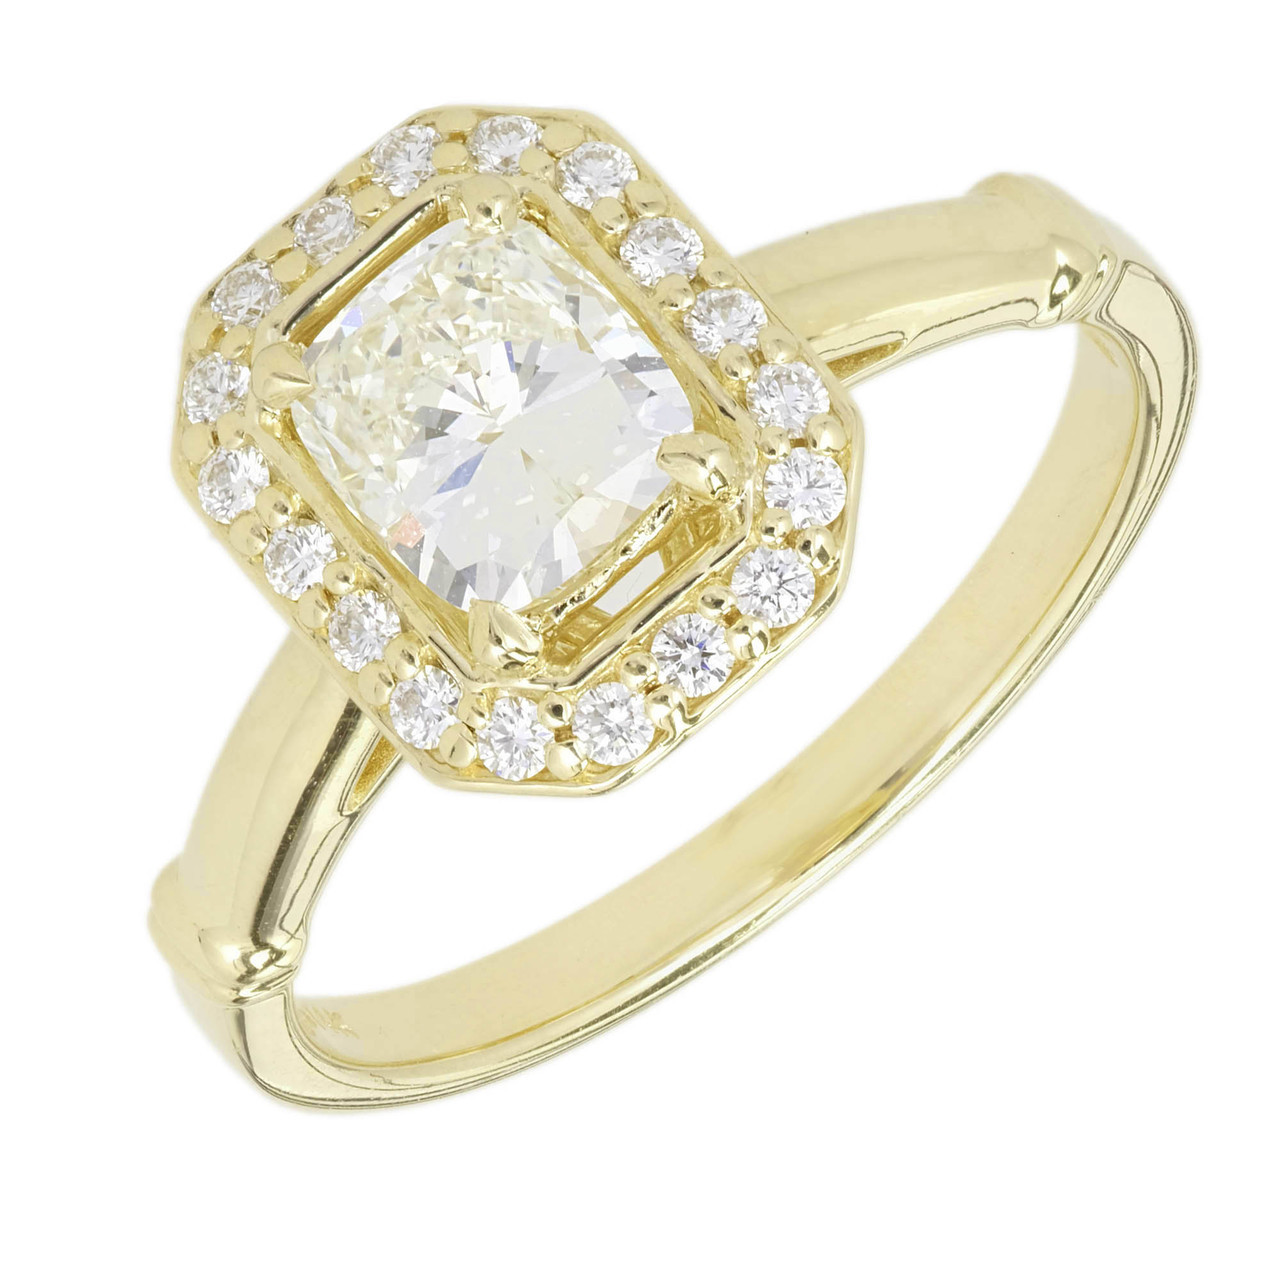 Peter Suchy Elongated Cushion Cut Diamond Engagement Ring 14k Yellow Gold Halo